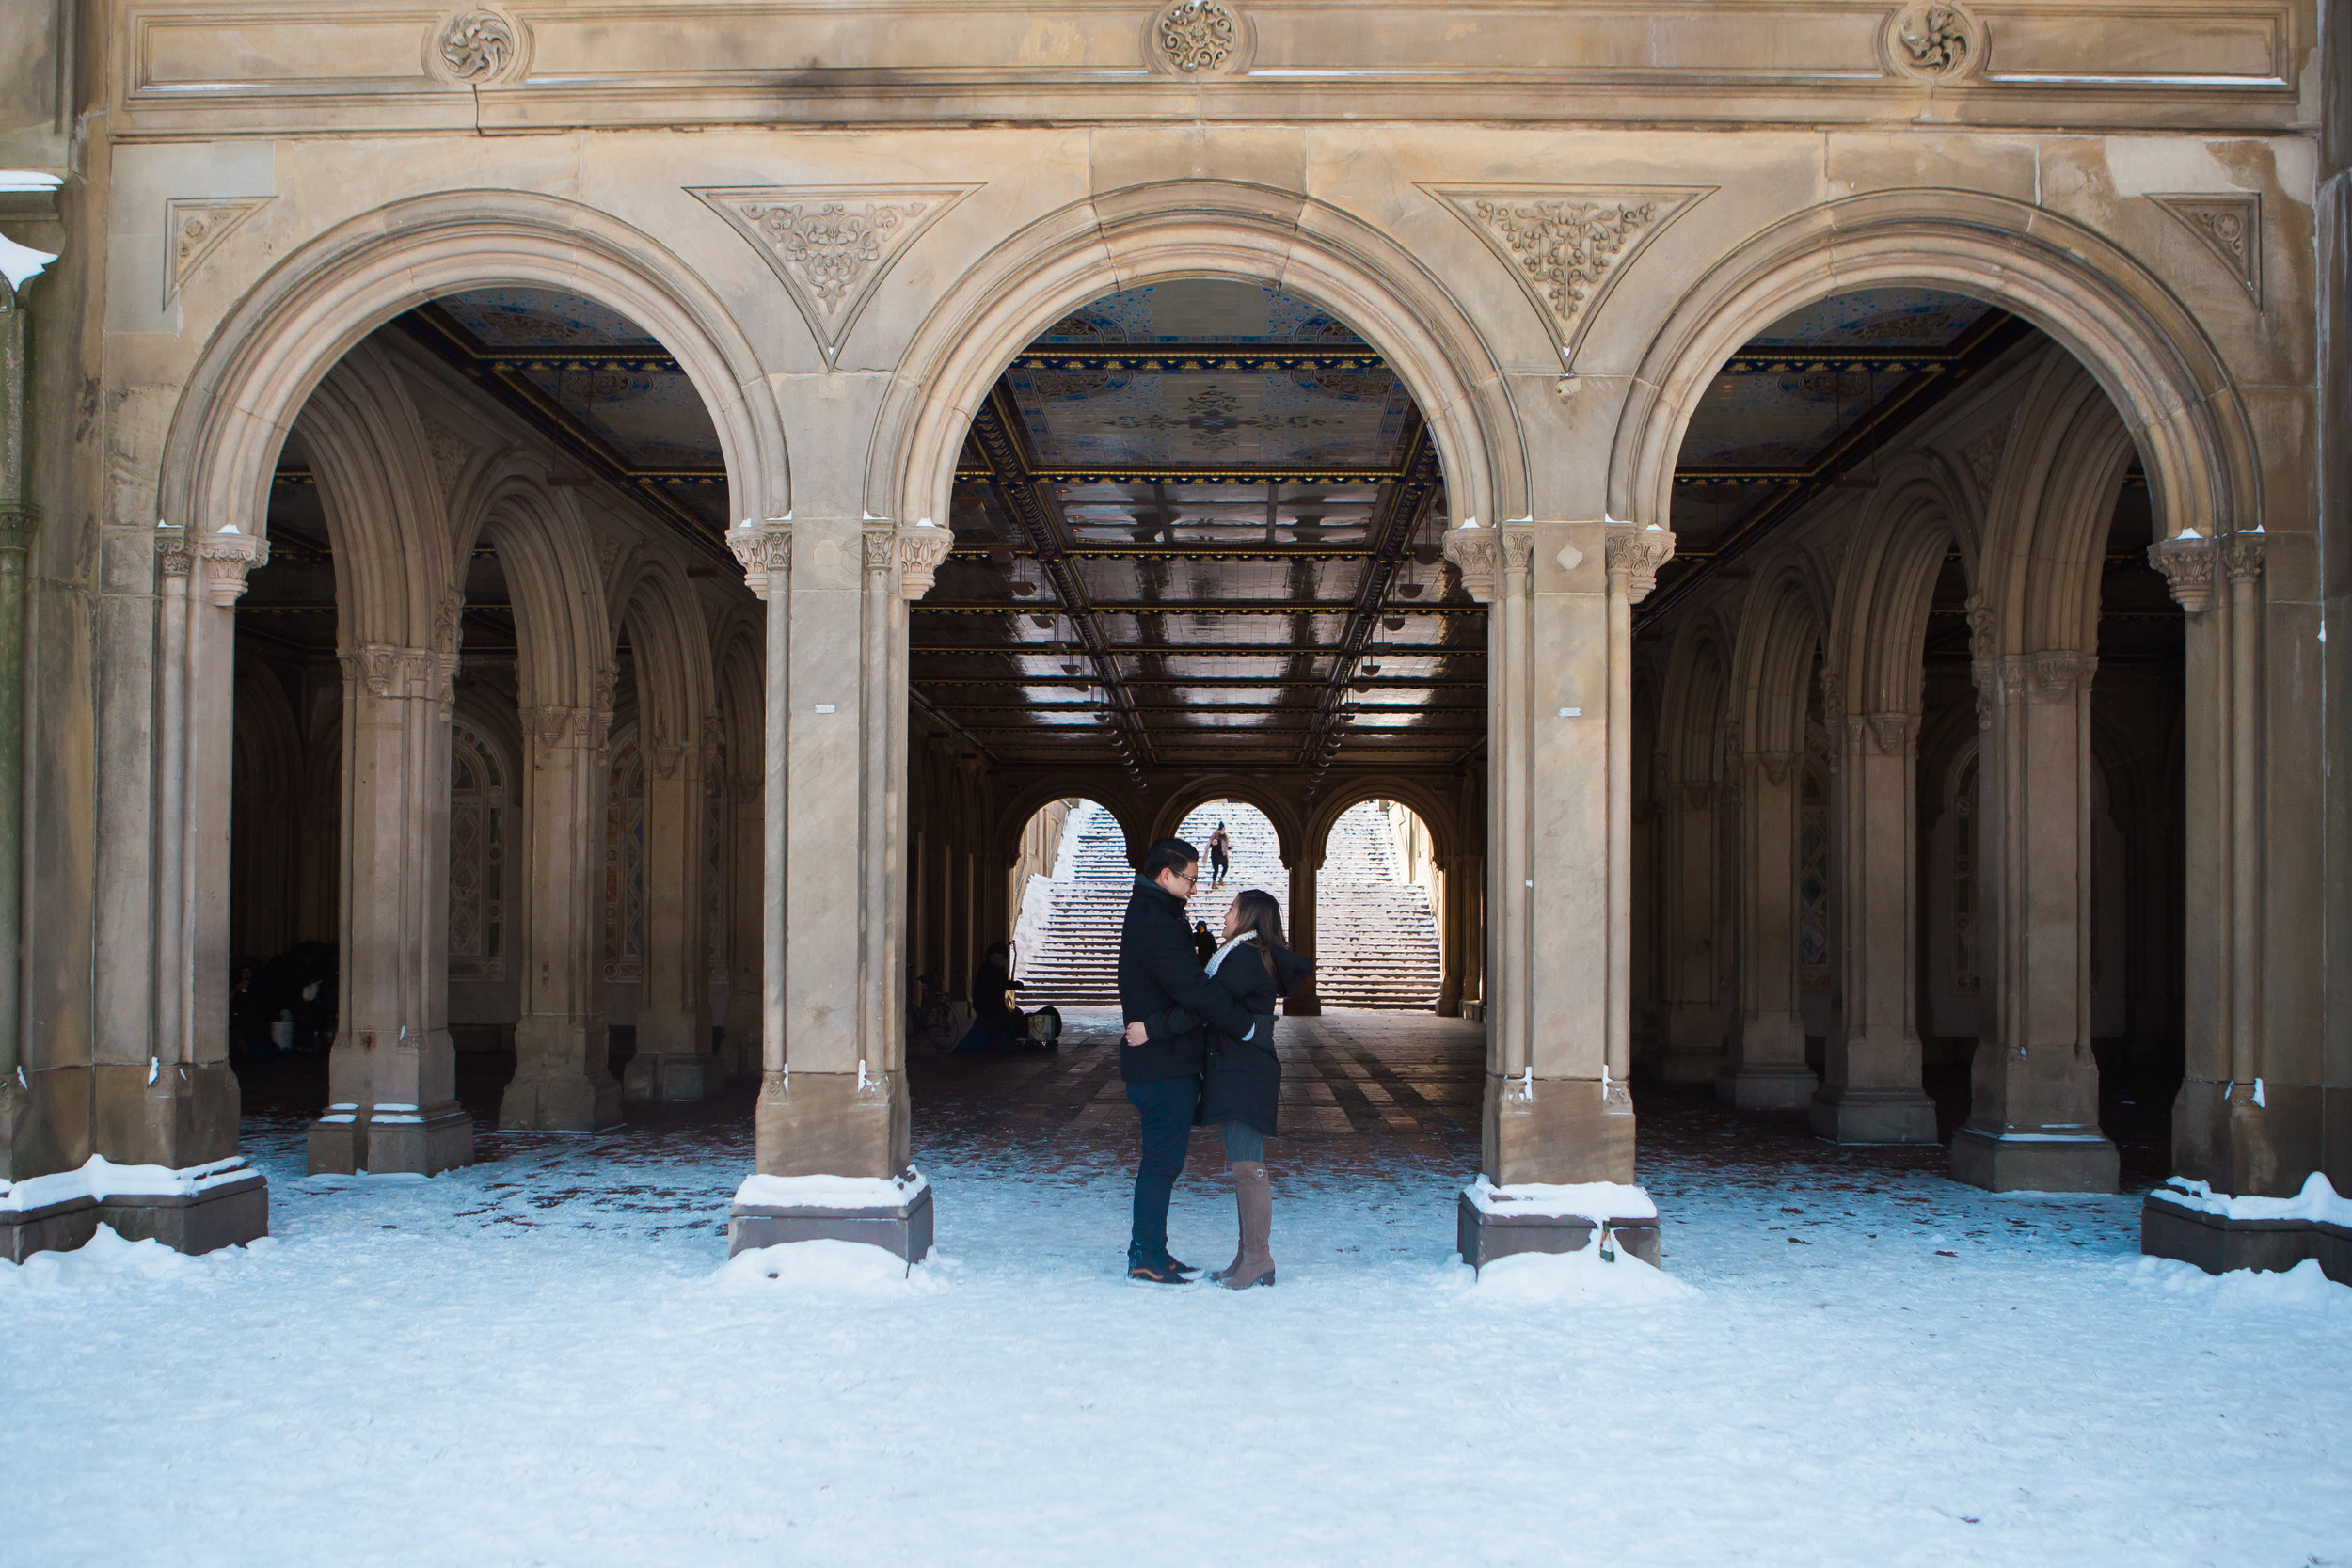 Kate-Alison-Photography-Kristin-Daniel-Central-Park-NYC-Engagement-Session-17.JPG